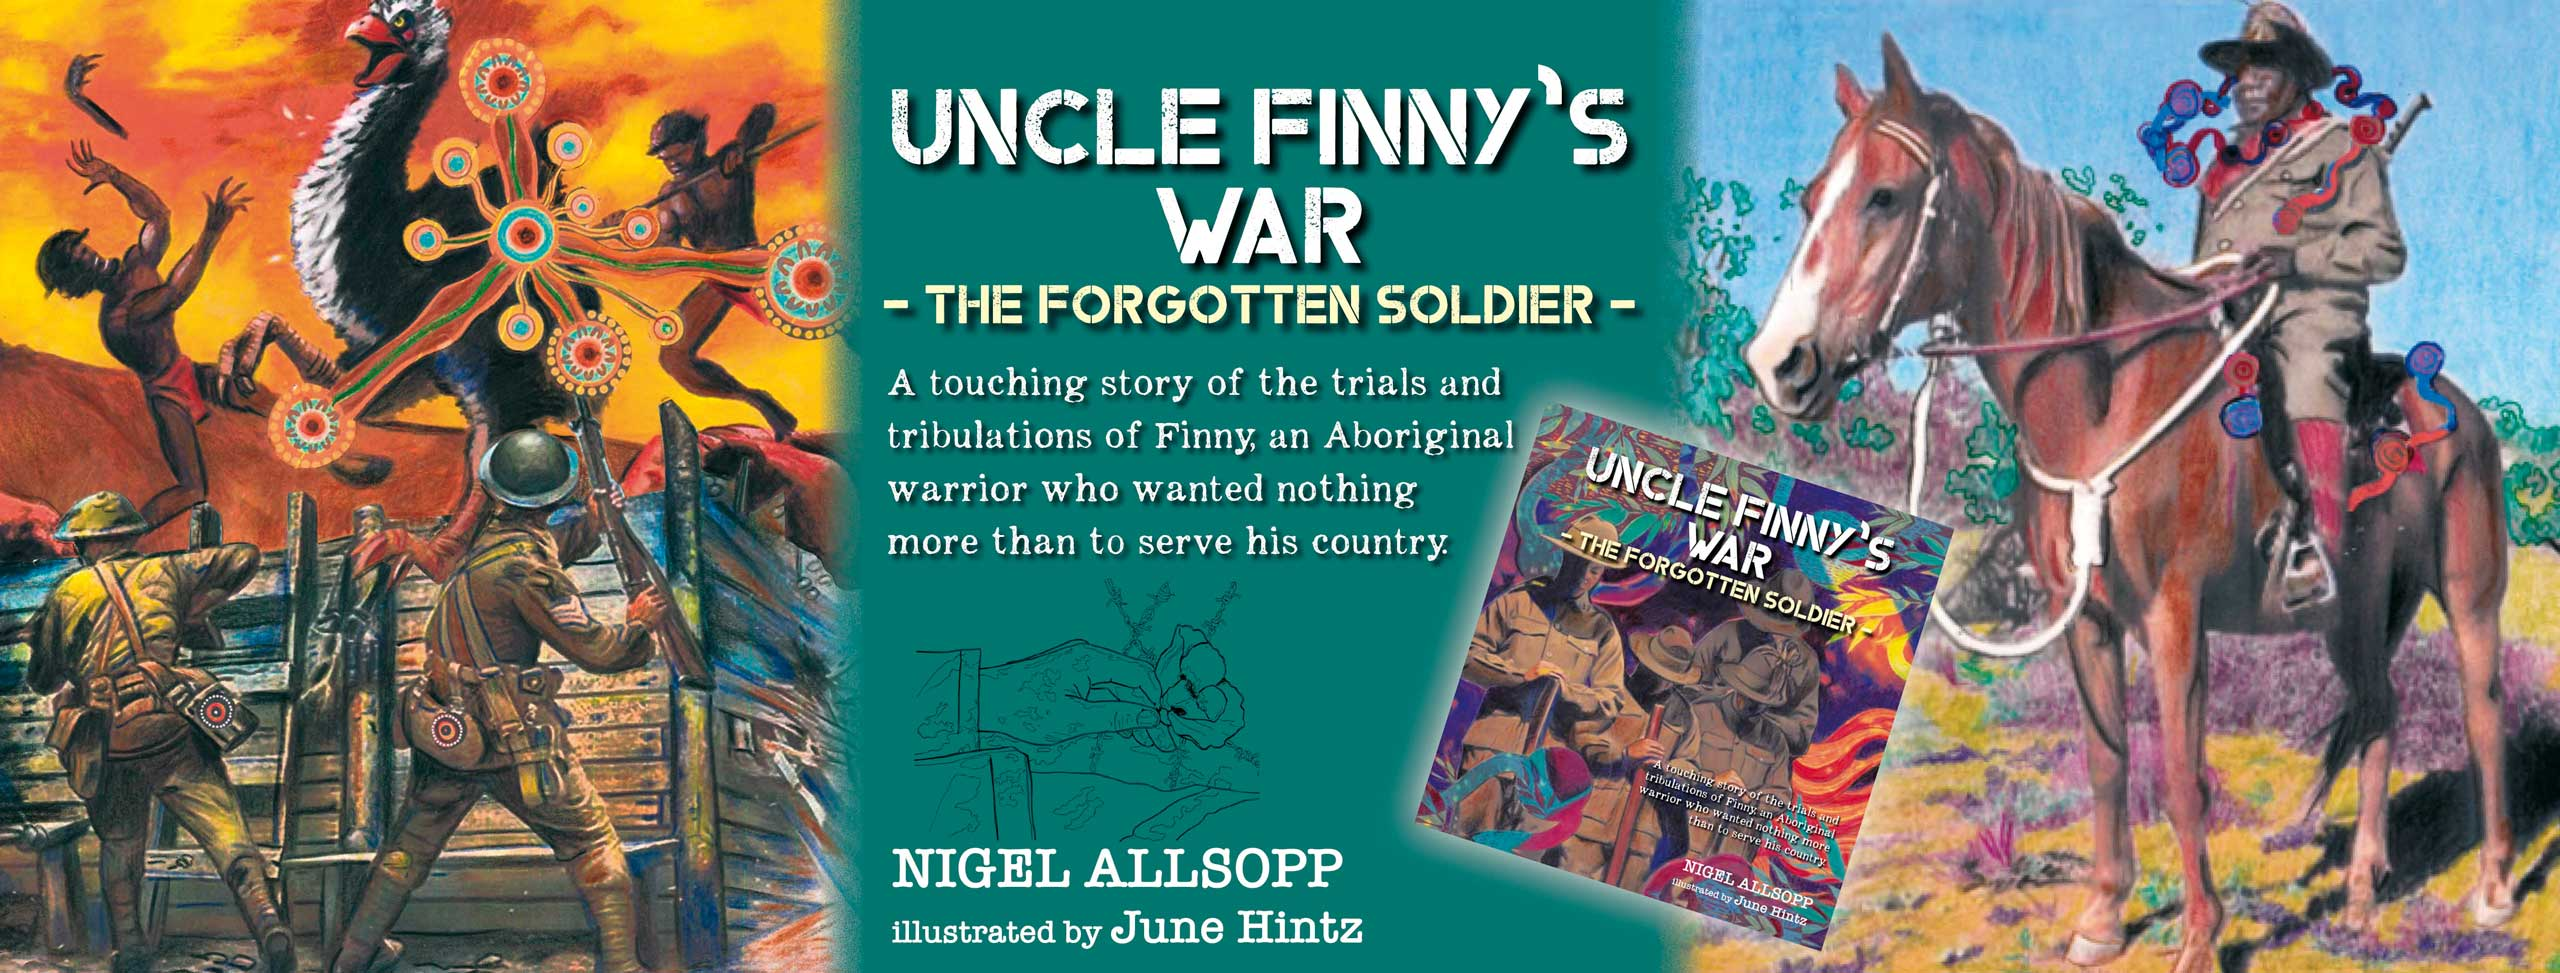 Uncle Finny